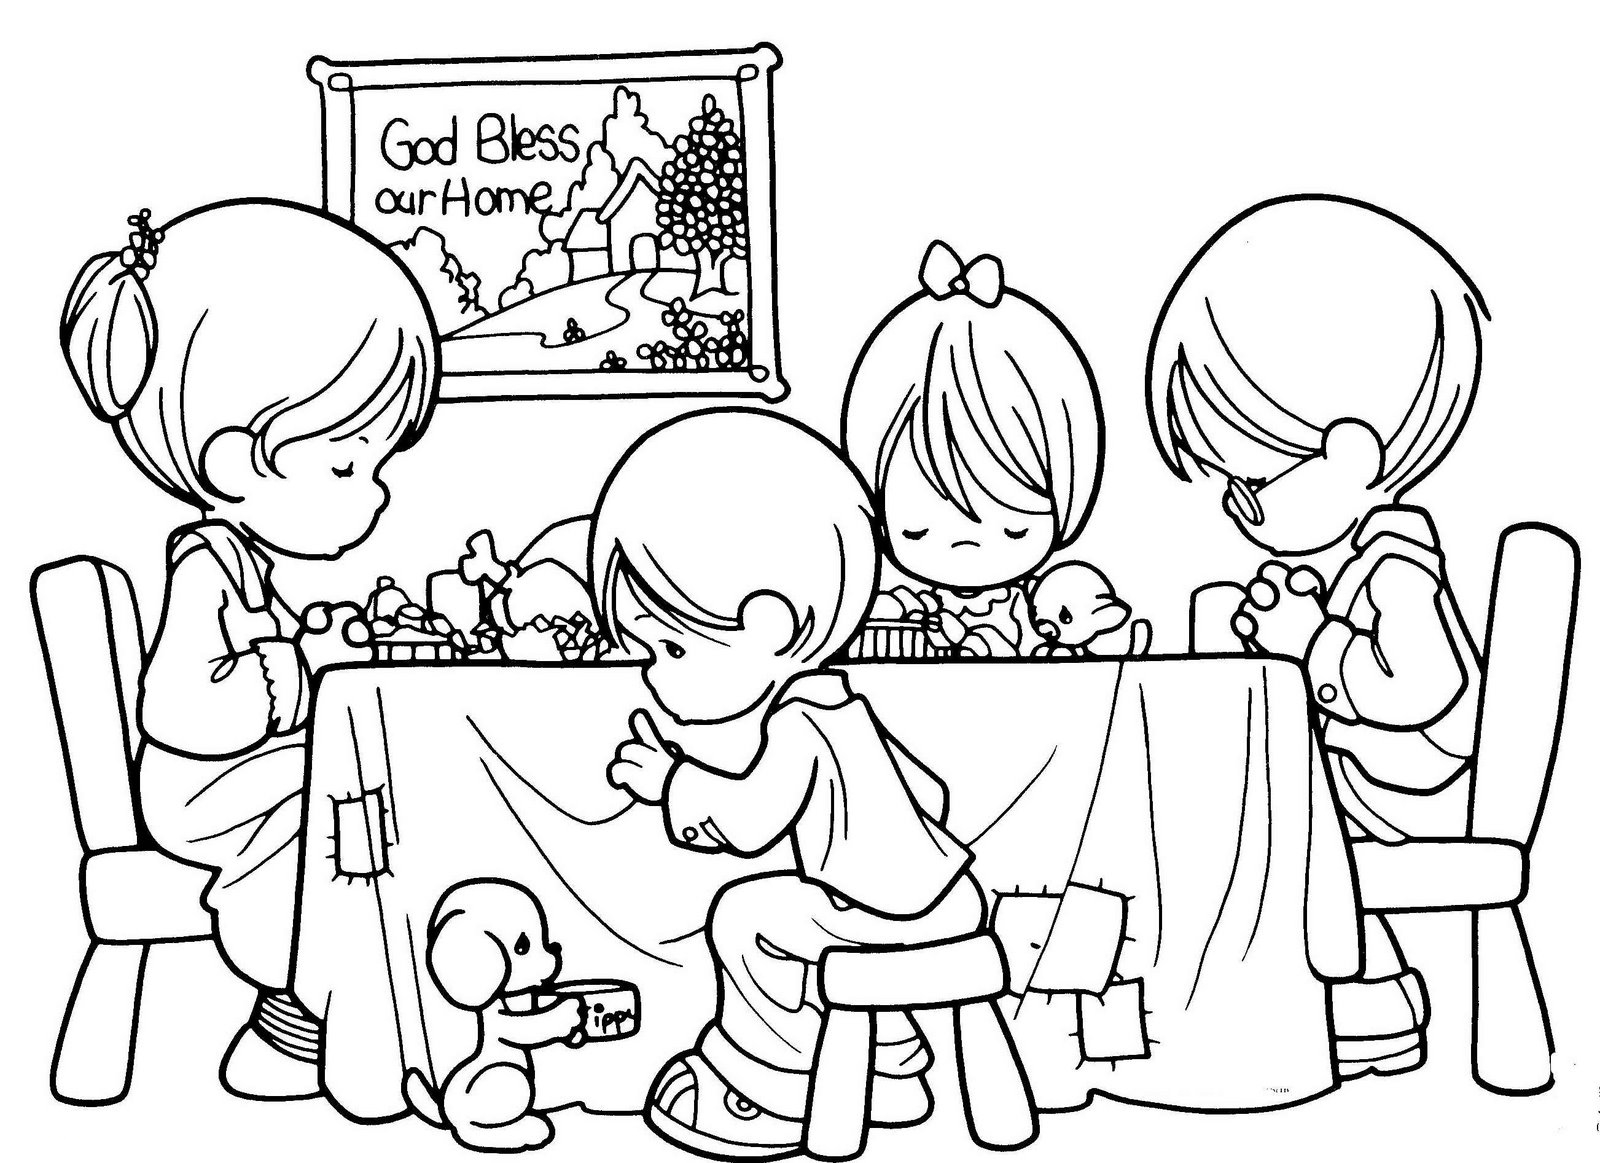 Christian Coloring Pages Adorable Free Printable Christian Coloring Pages For Kids  Best Coloring .